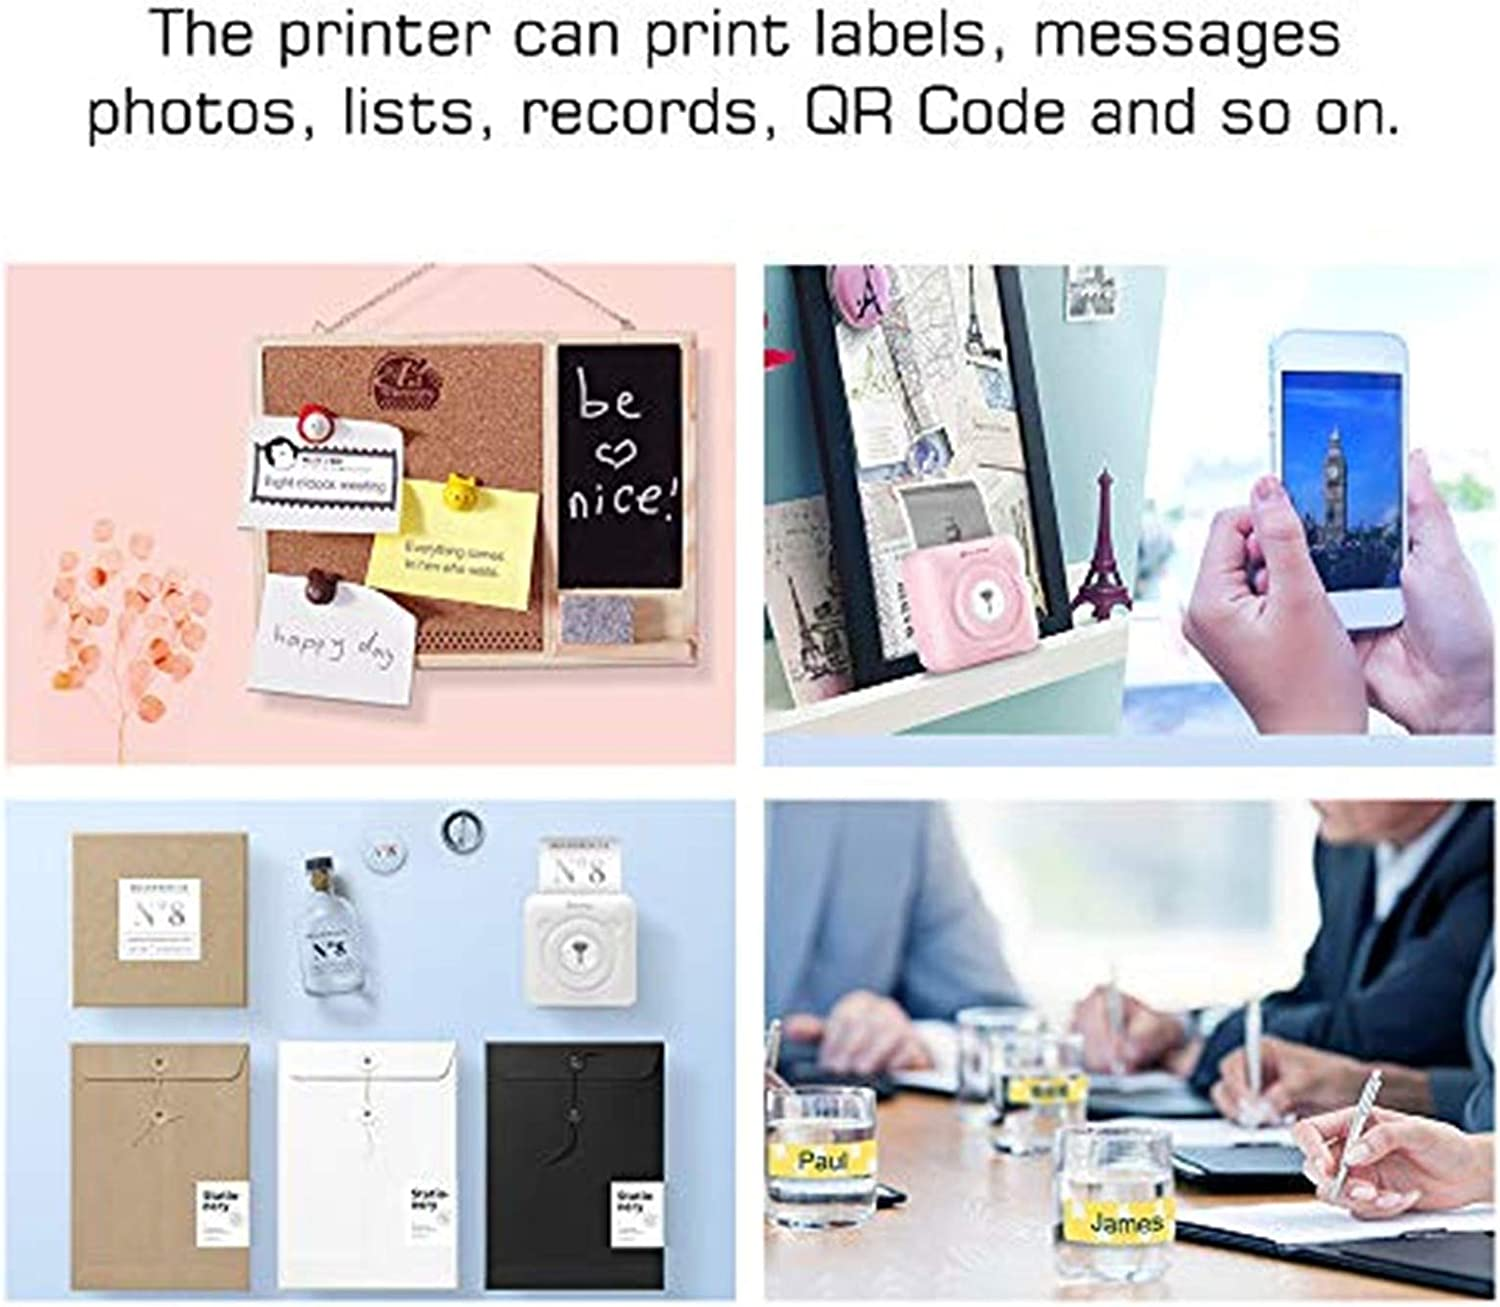 Portable Wireless Printers for Travel Mini Bluetooth Thermal Printer Label Picture Memo Receipt Photo Printer for Cell Phone iOS /& Android Smartphone with 6 Thermal Paper Rolls 203DPI, Blue